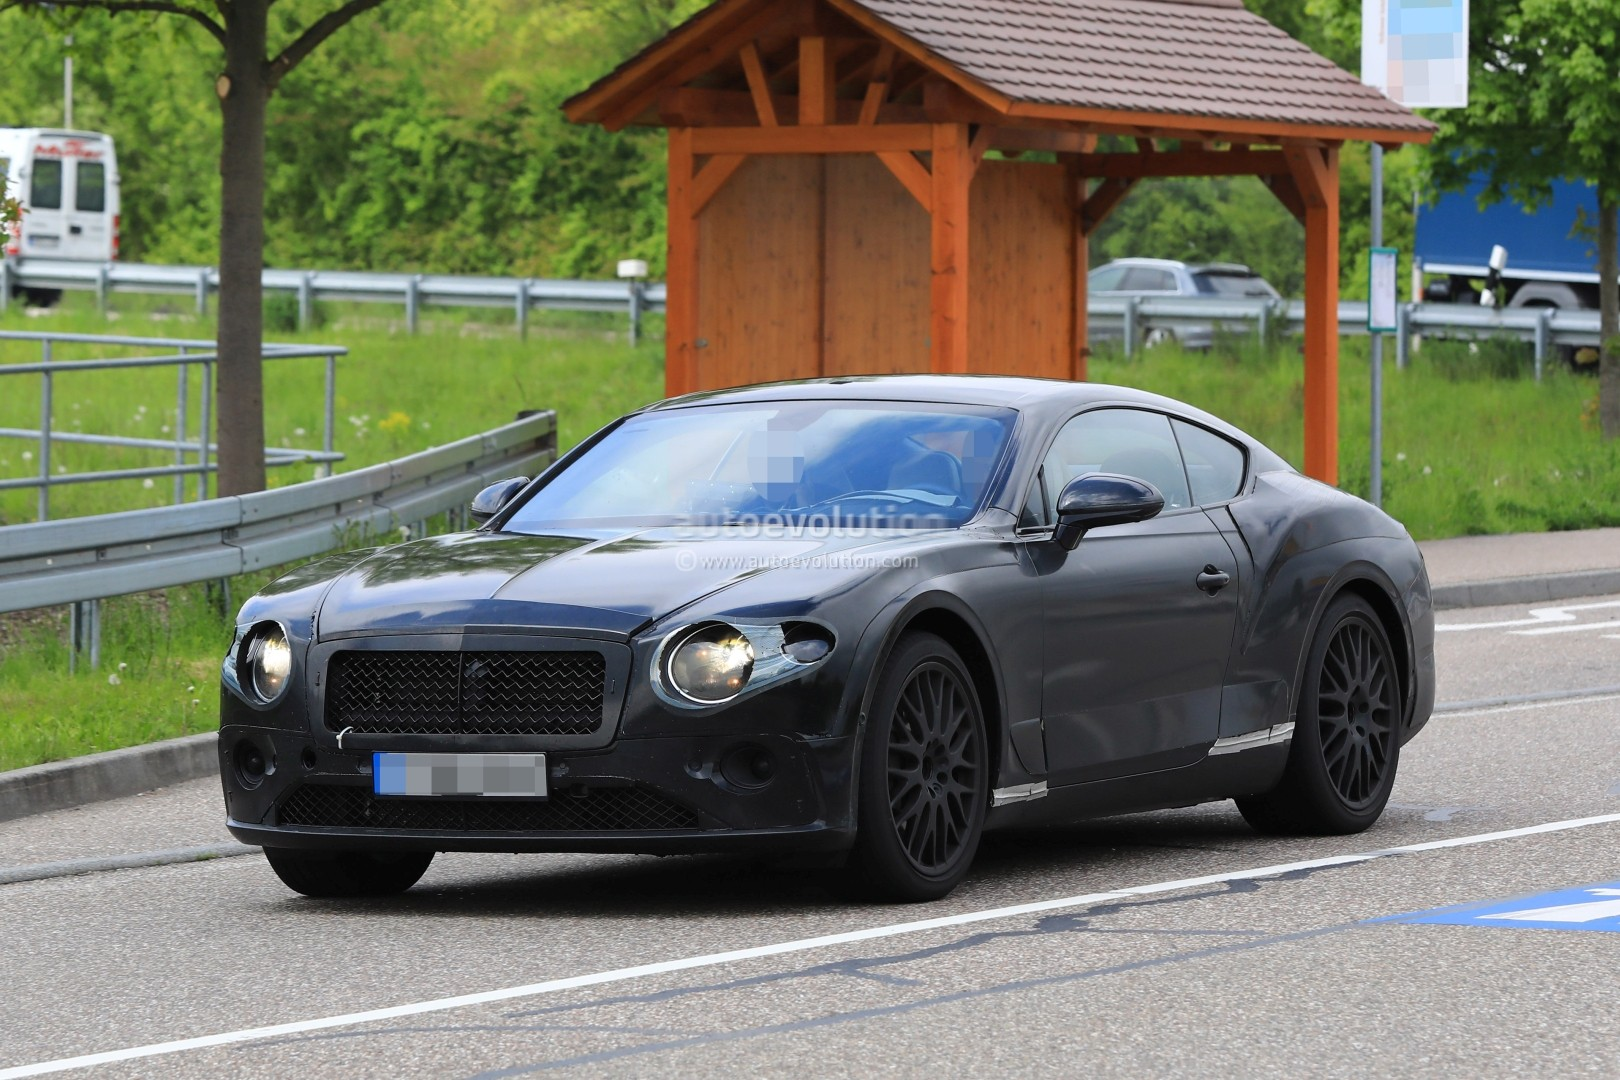 2017 - [Bentley] Continental GT - Page 2 2018-bentley-continental-gt-shows-new-features-in-first-interior-spyshots_4